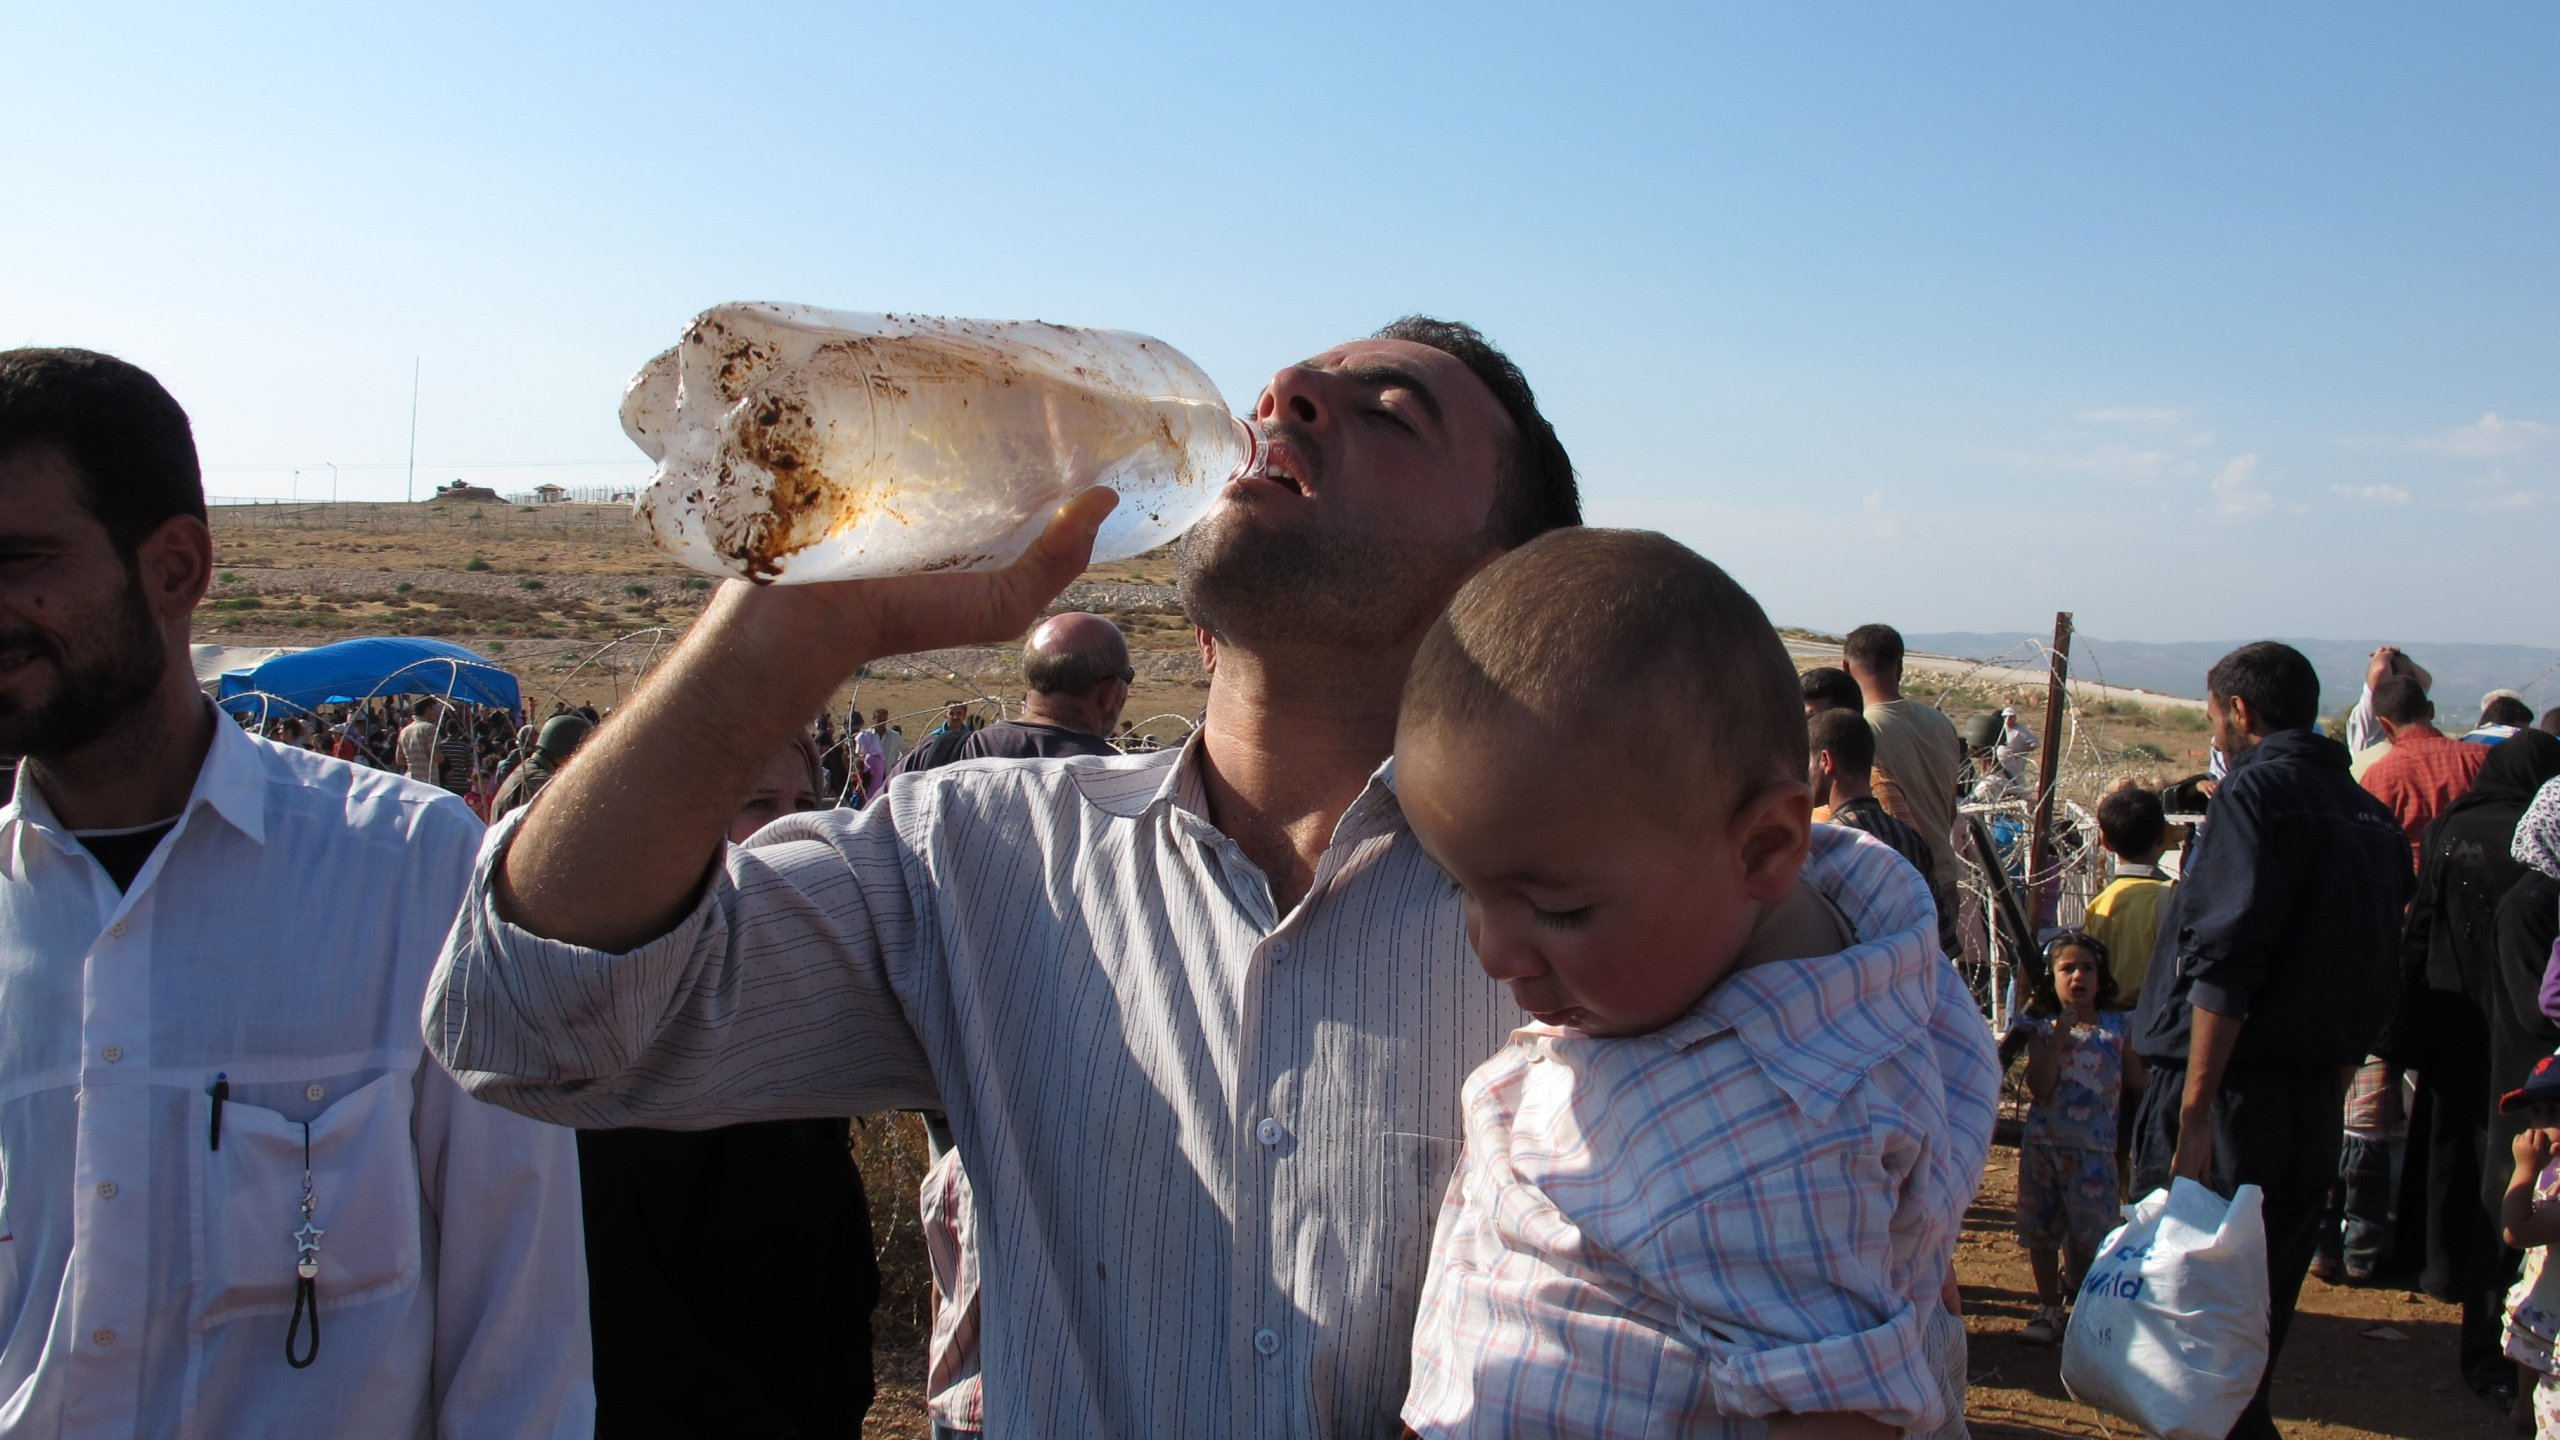 A Syrian refugee with his baby boy in his arms pauses to take a drink of water in northern Syria. (Credit: CNN)